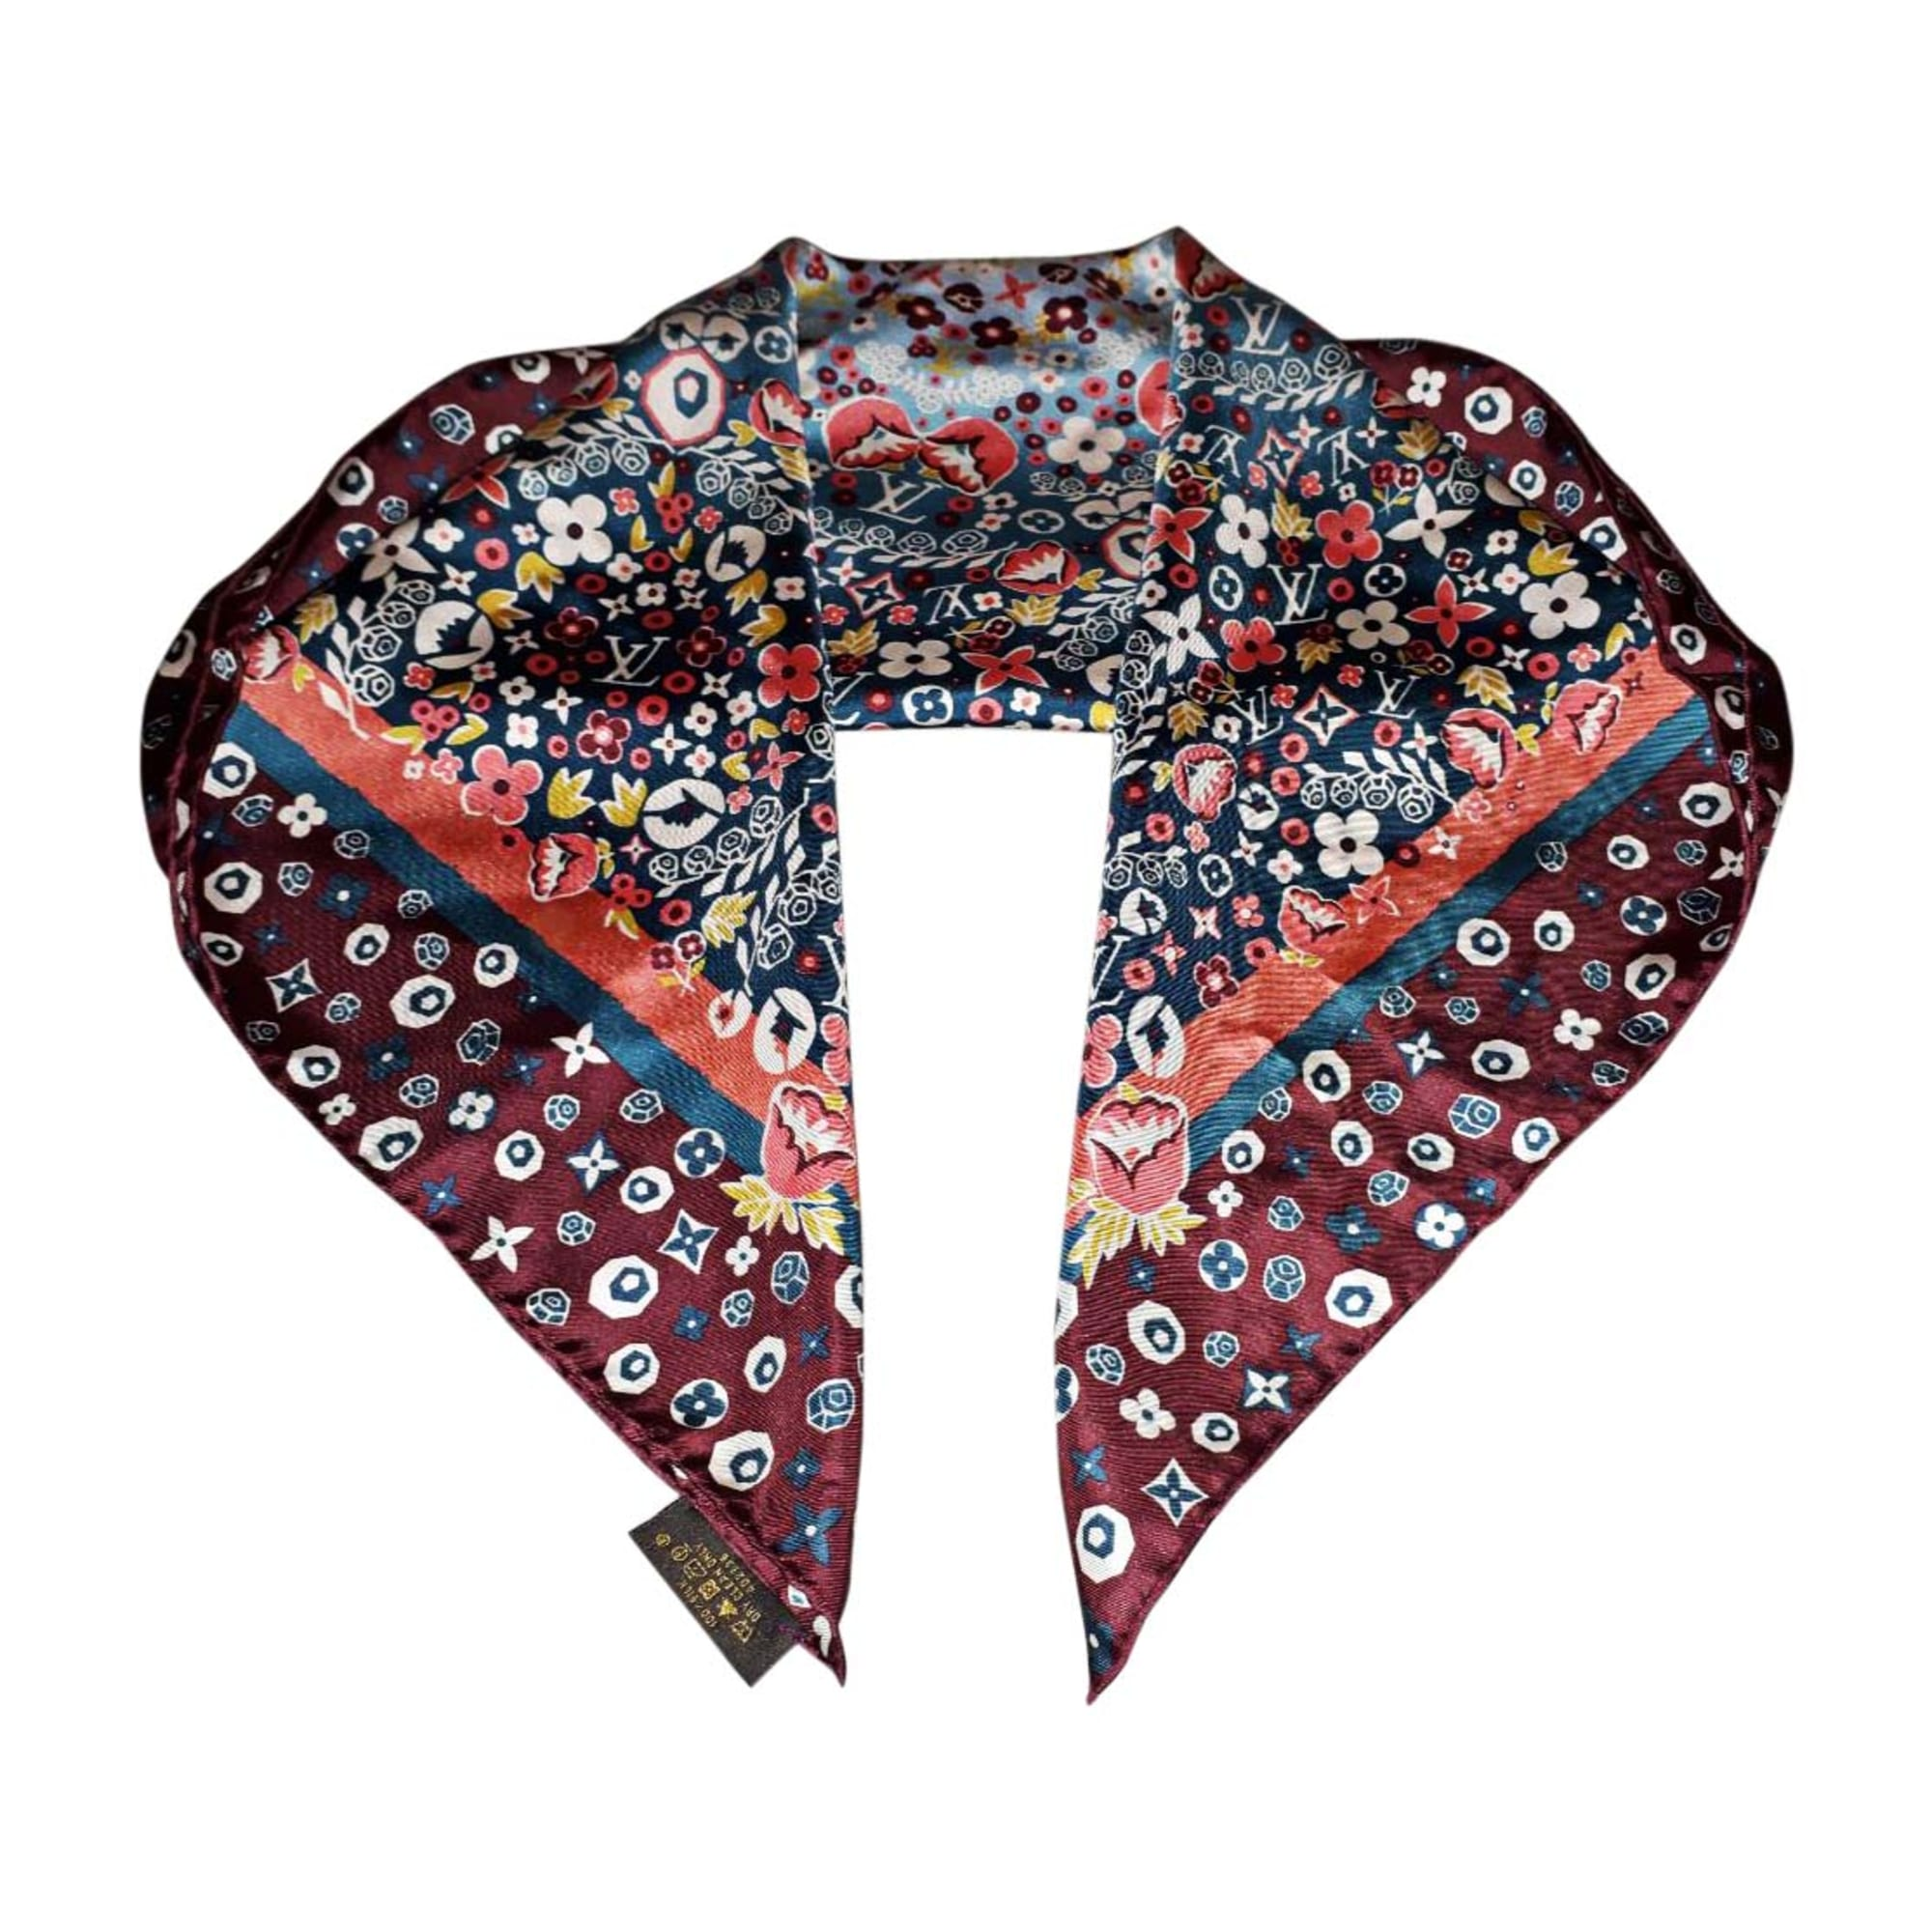 42e7743897d Foulard LOUIS VUITTON multicouleur - 8105211